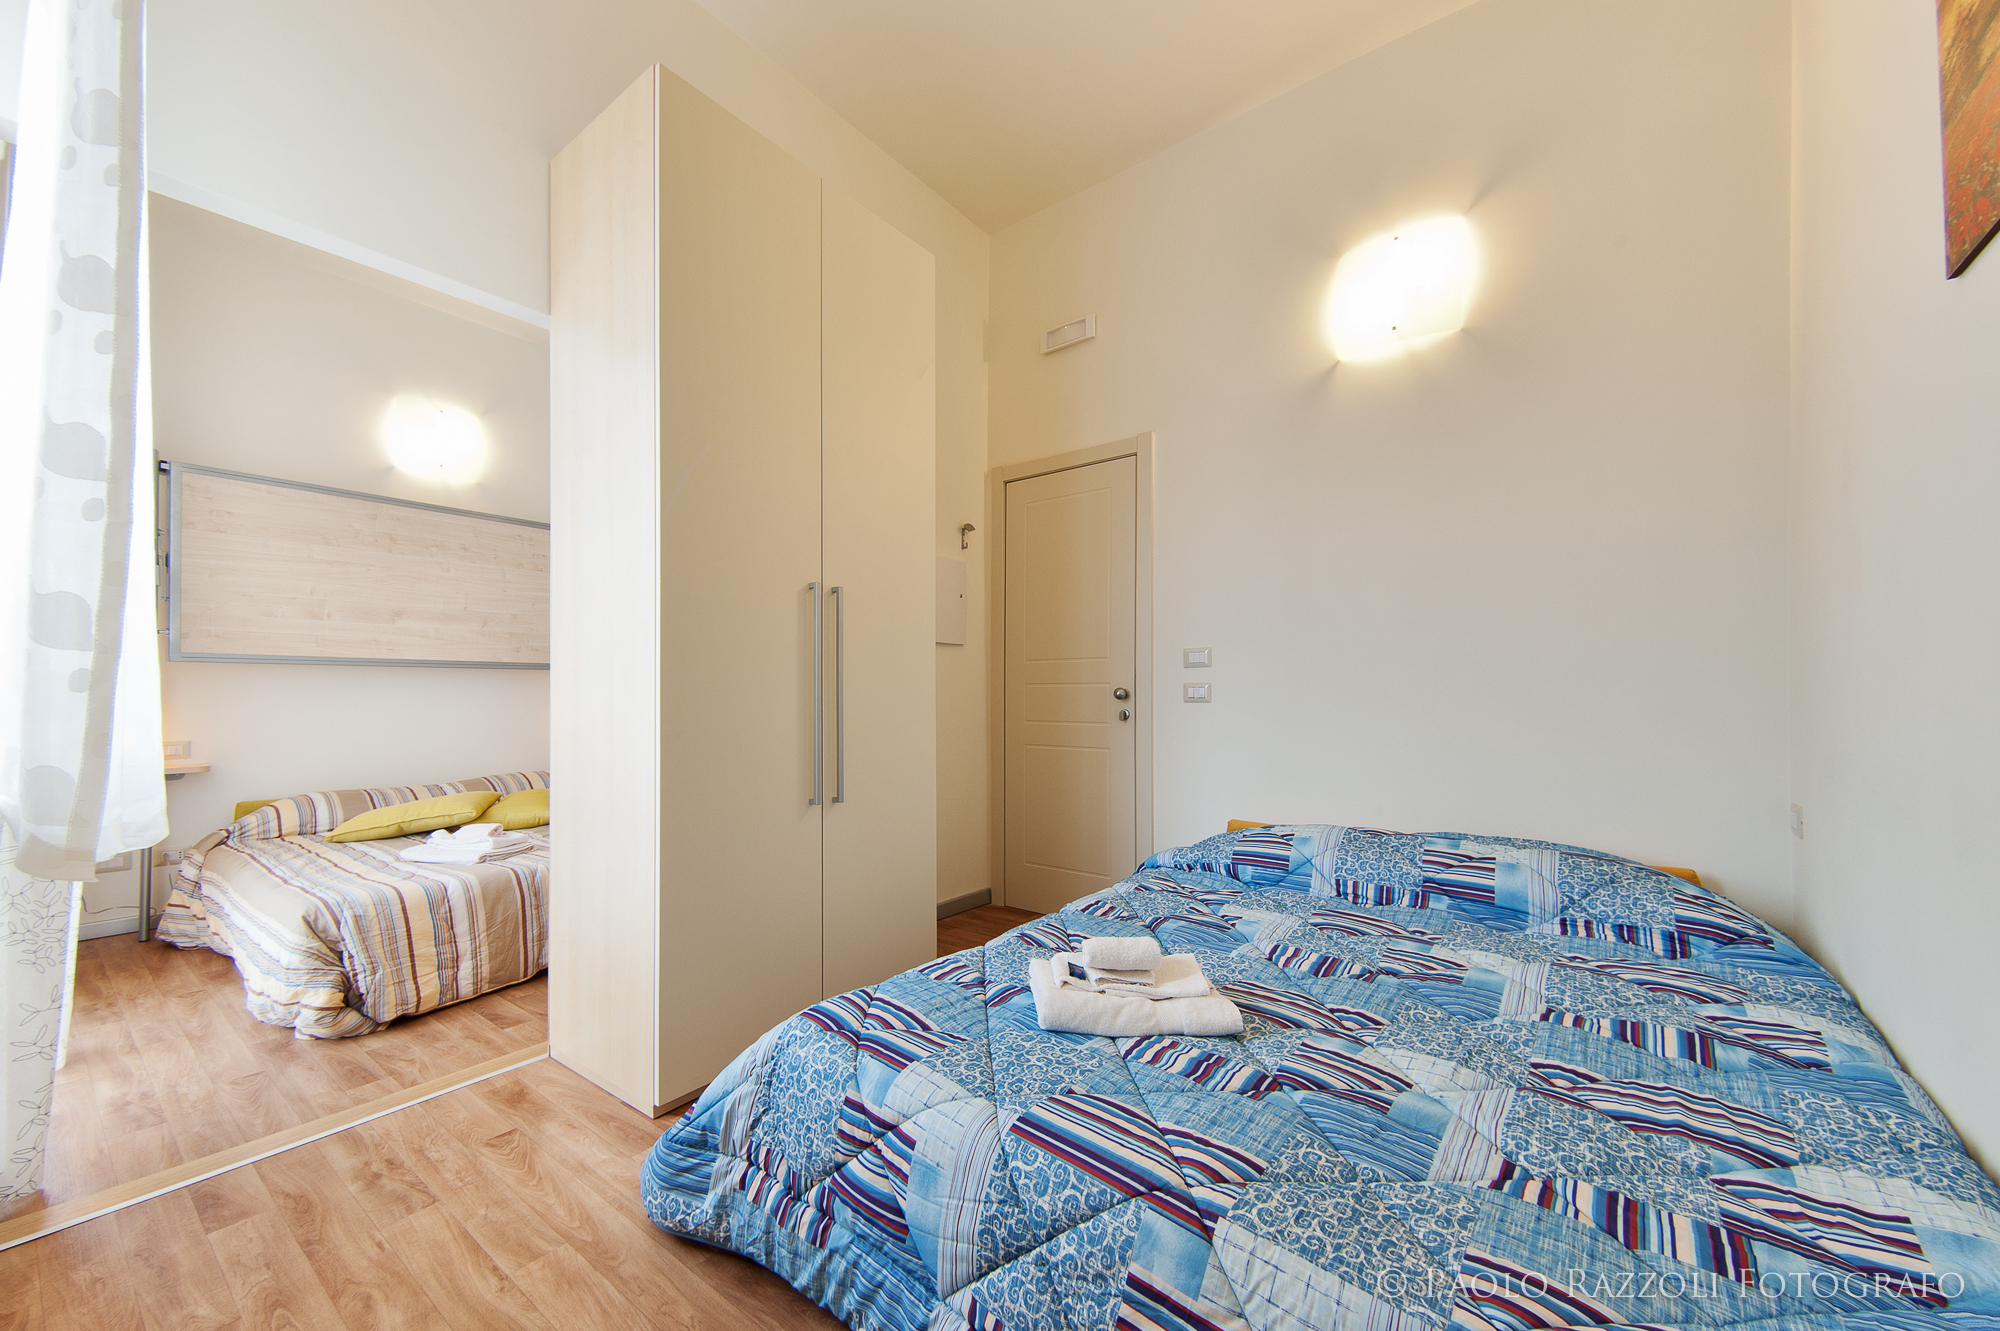 B&B Arsella Viareggio - Bed and Breakfast